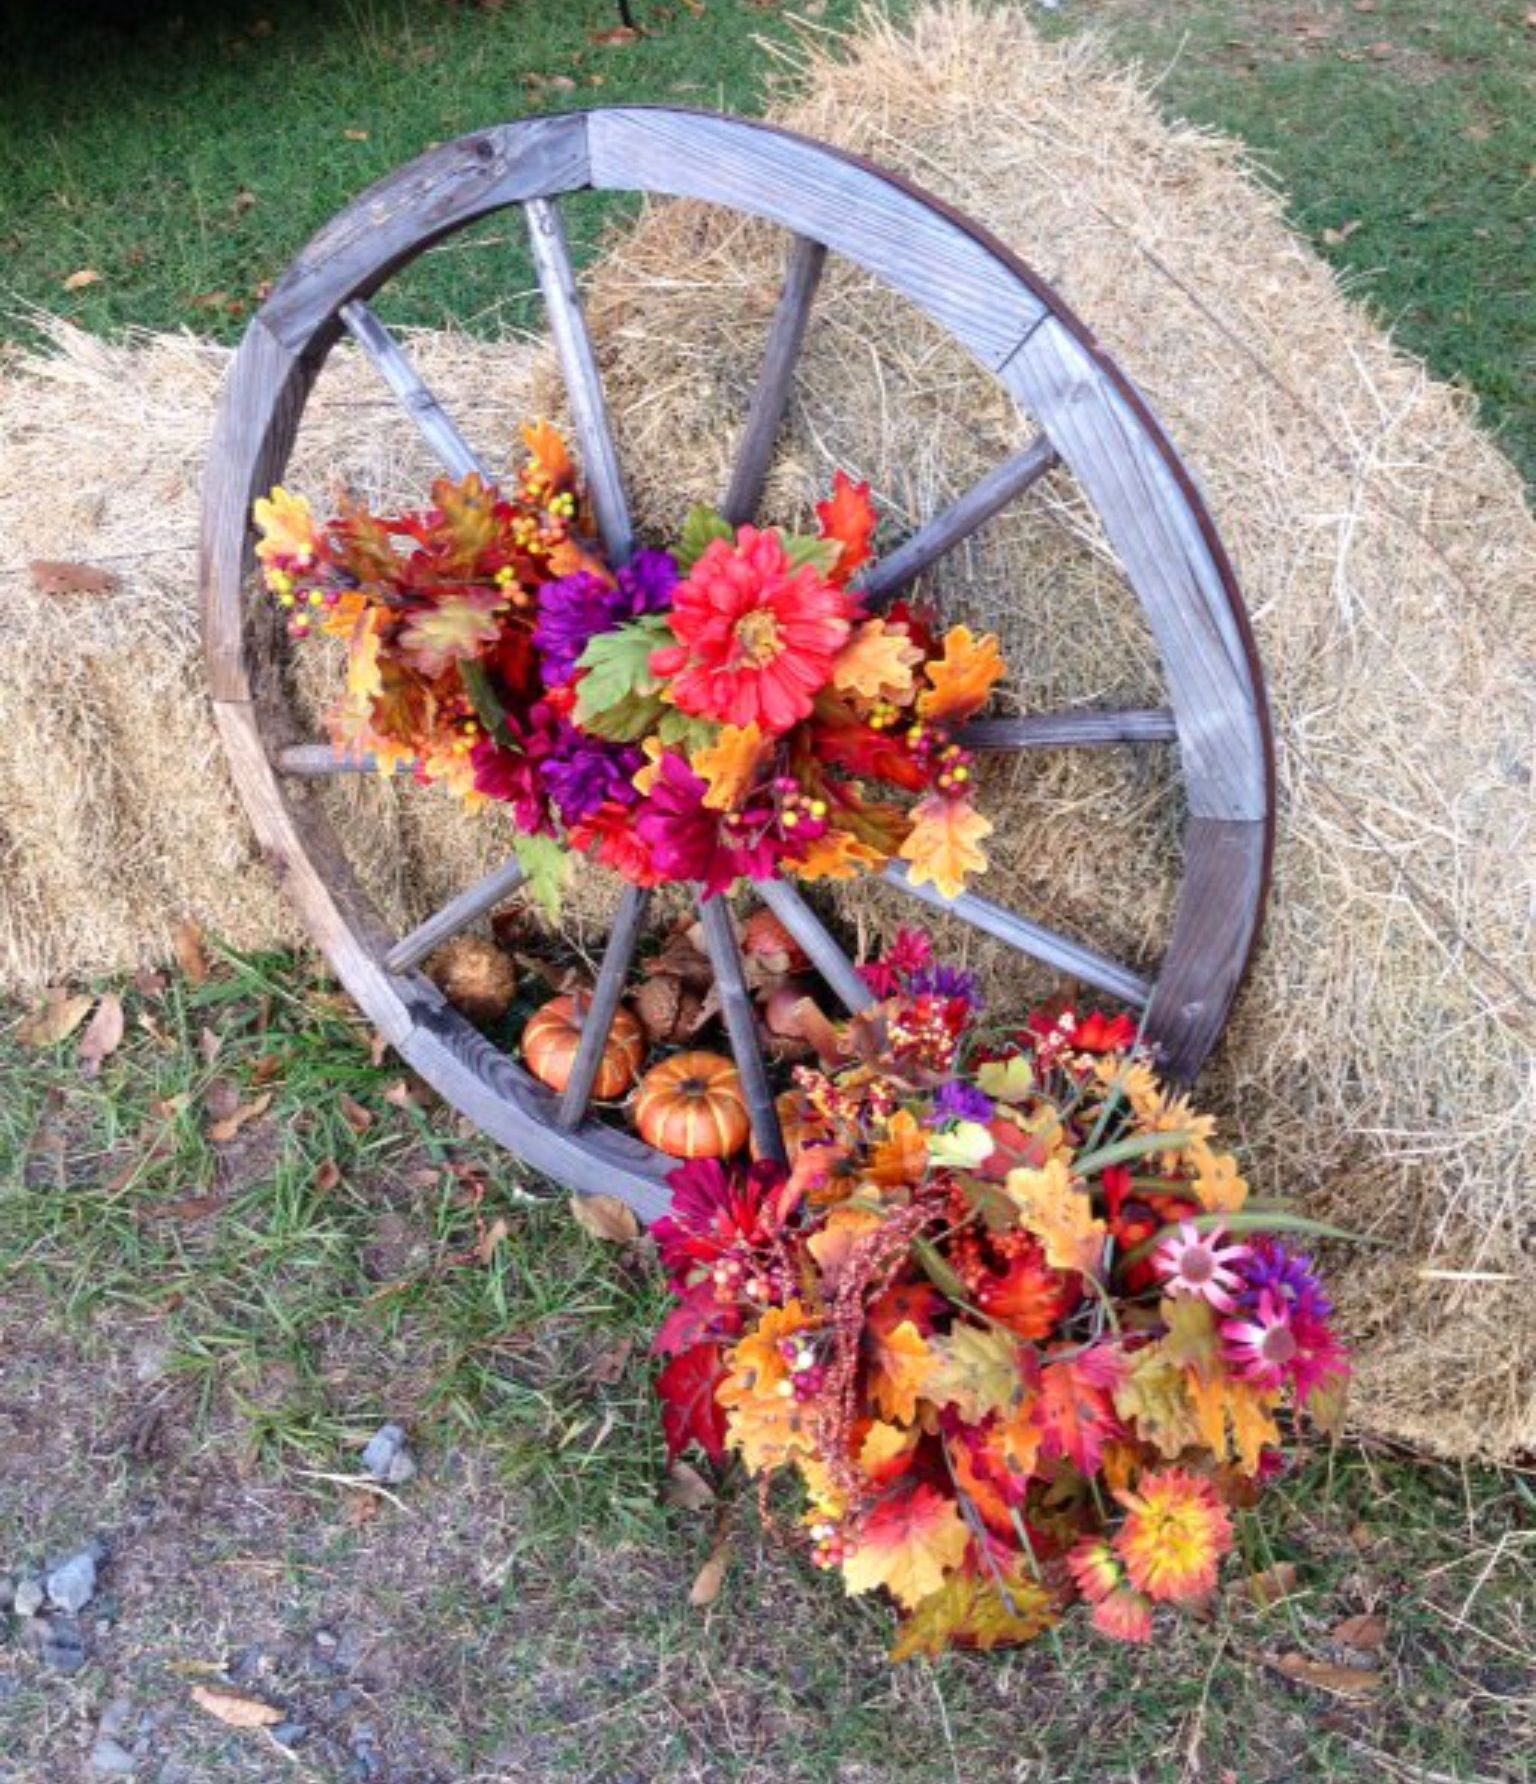 30 Rustic Country Wedding Ideas With Wagon Wheel Details Hargett